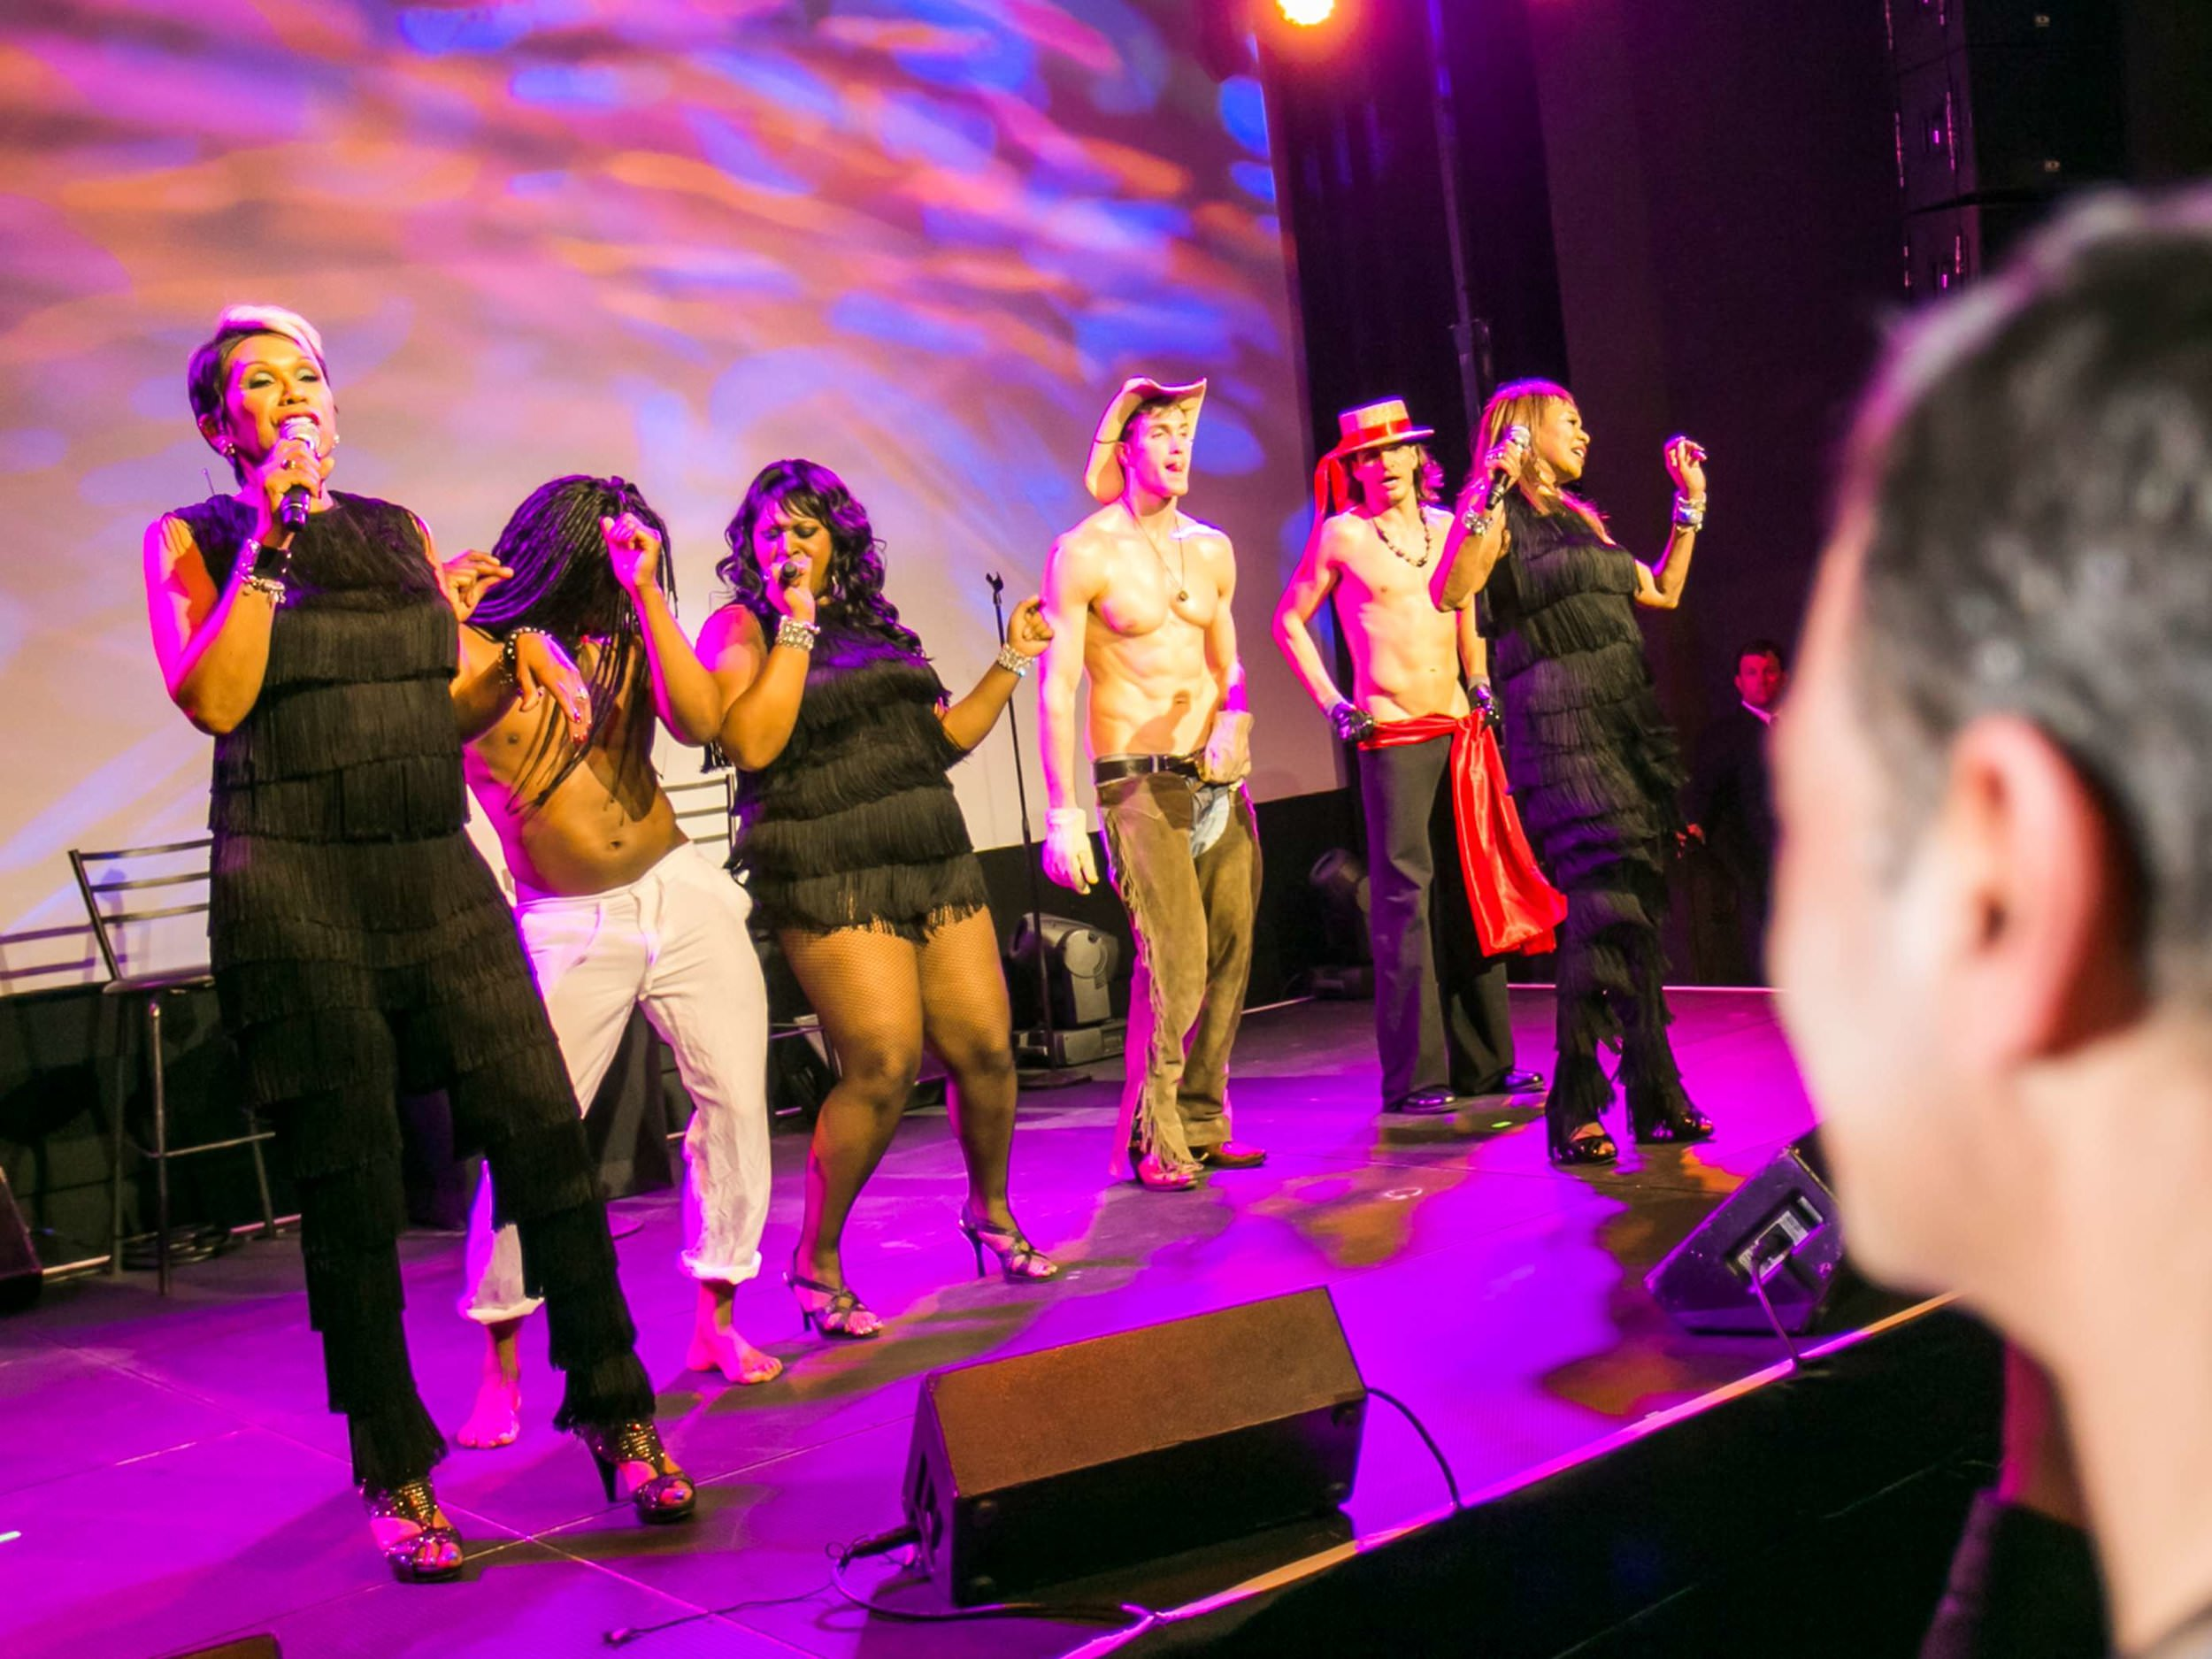 dance-motivators-at-50th-birthday-pointer-sisters-at-revere-hotel-in-boston-ma-with-harrington-events.jpg